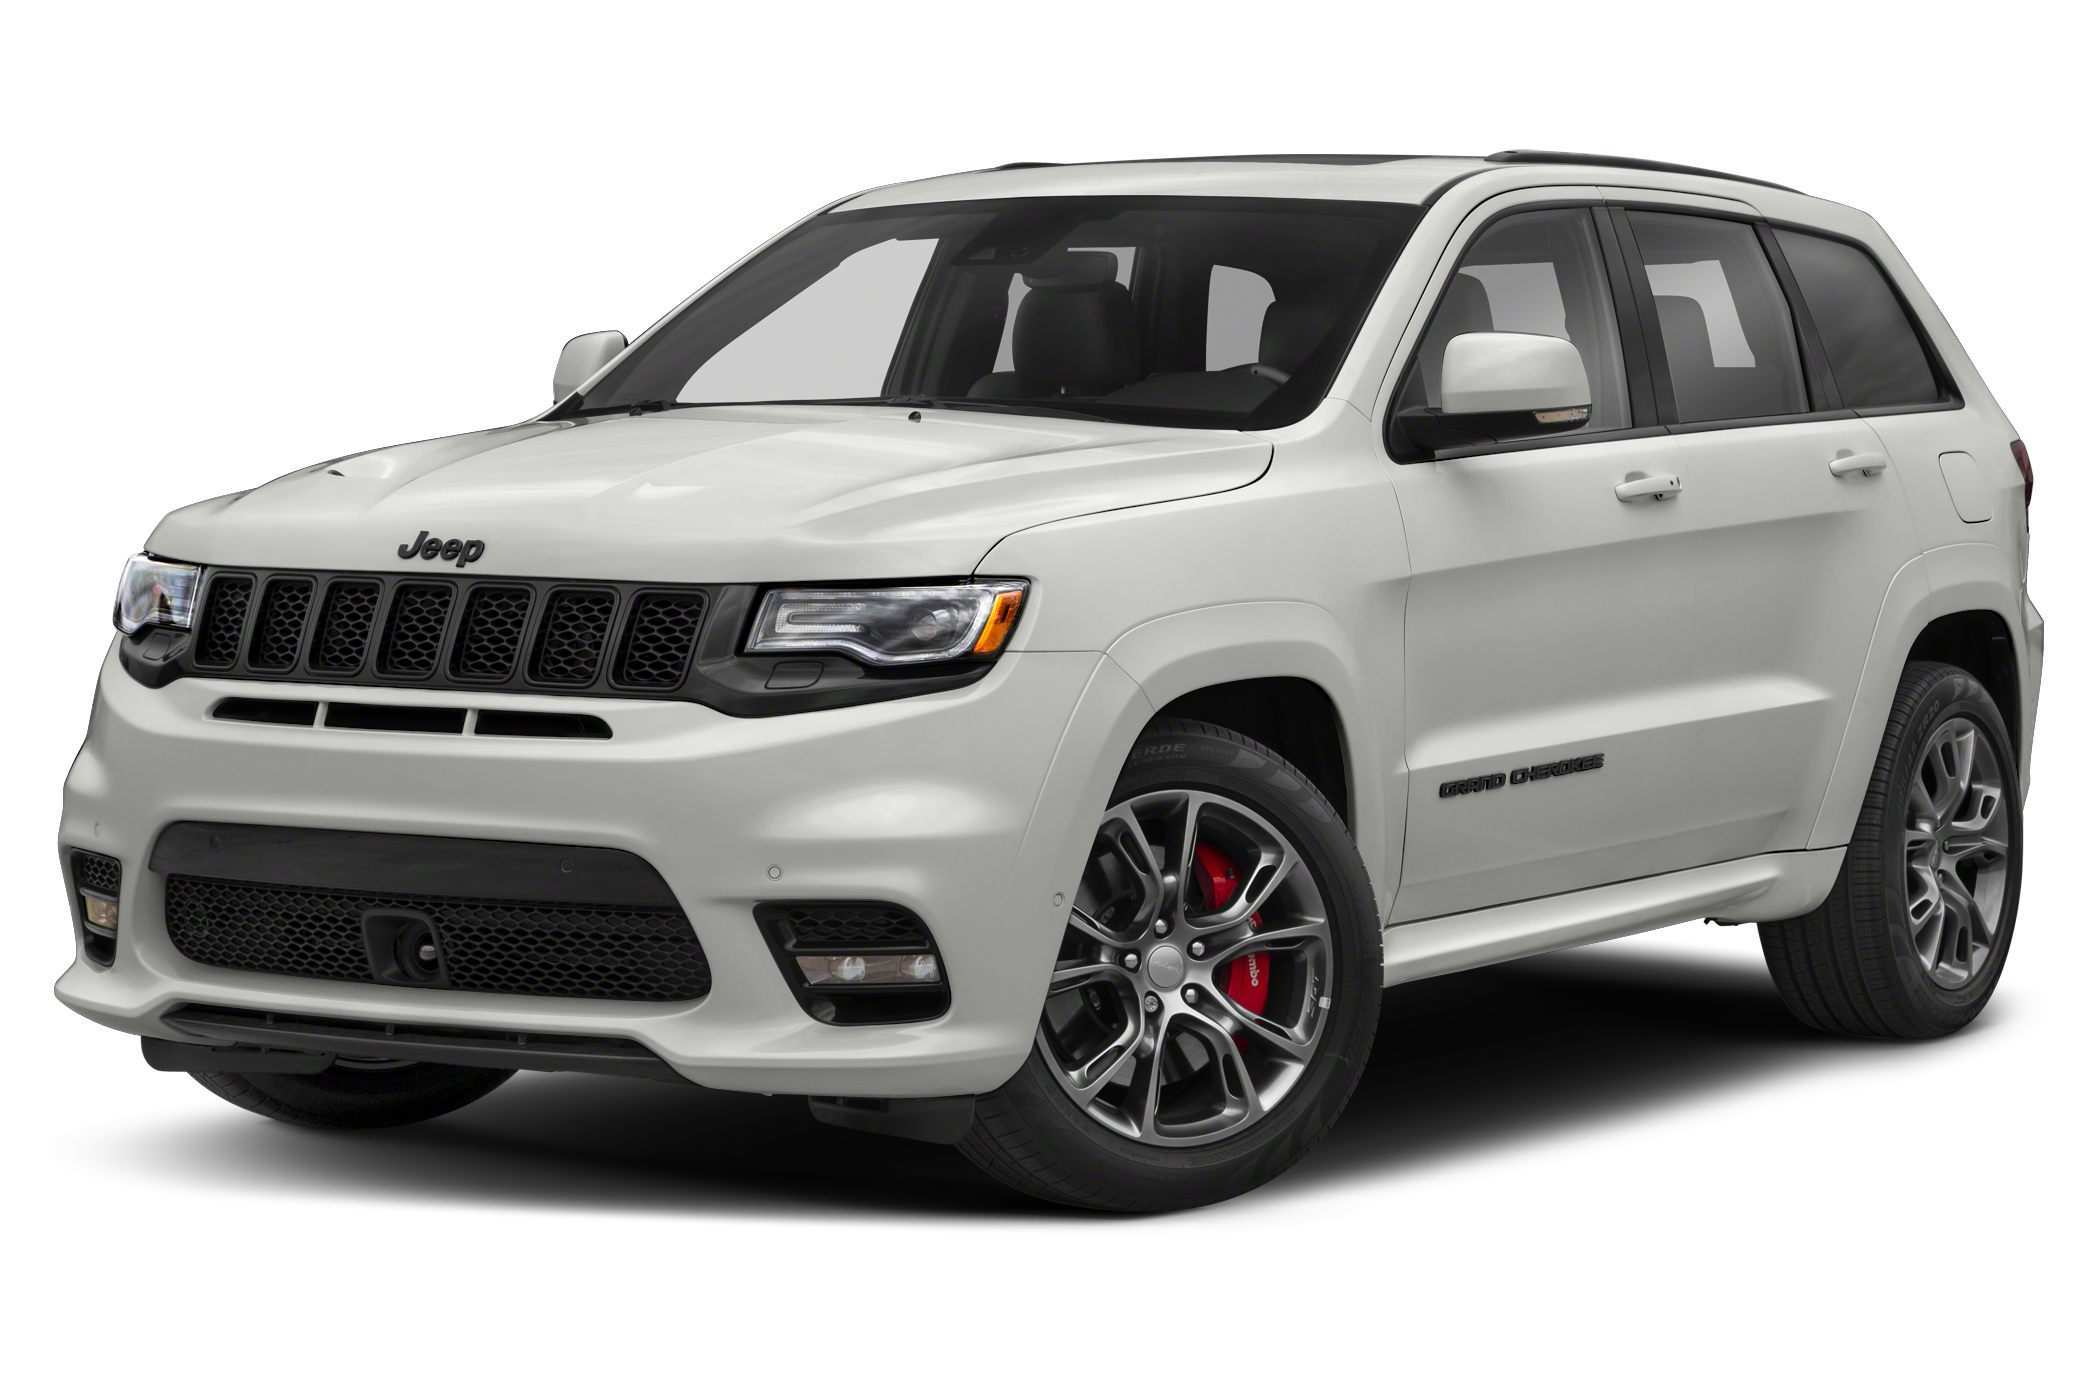 62 The 2019 Jeep Grand Cherokee Srt8 New Model And Performance